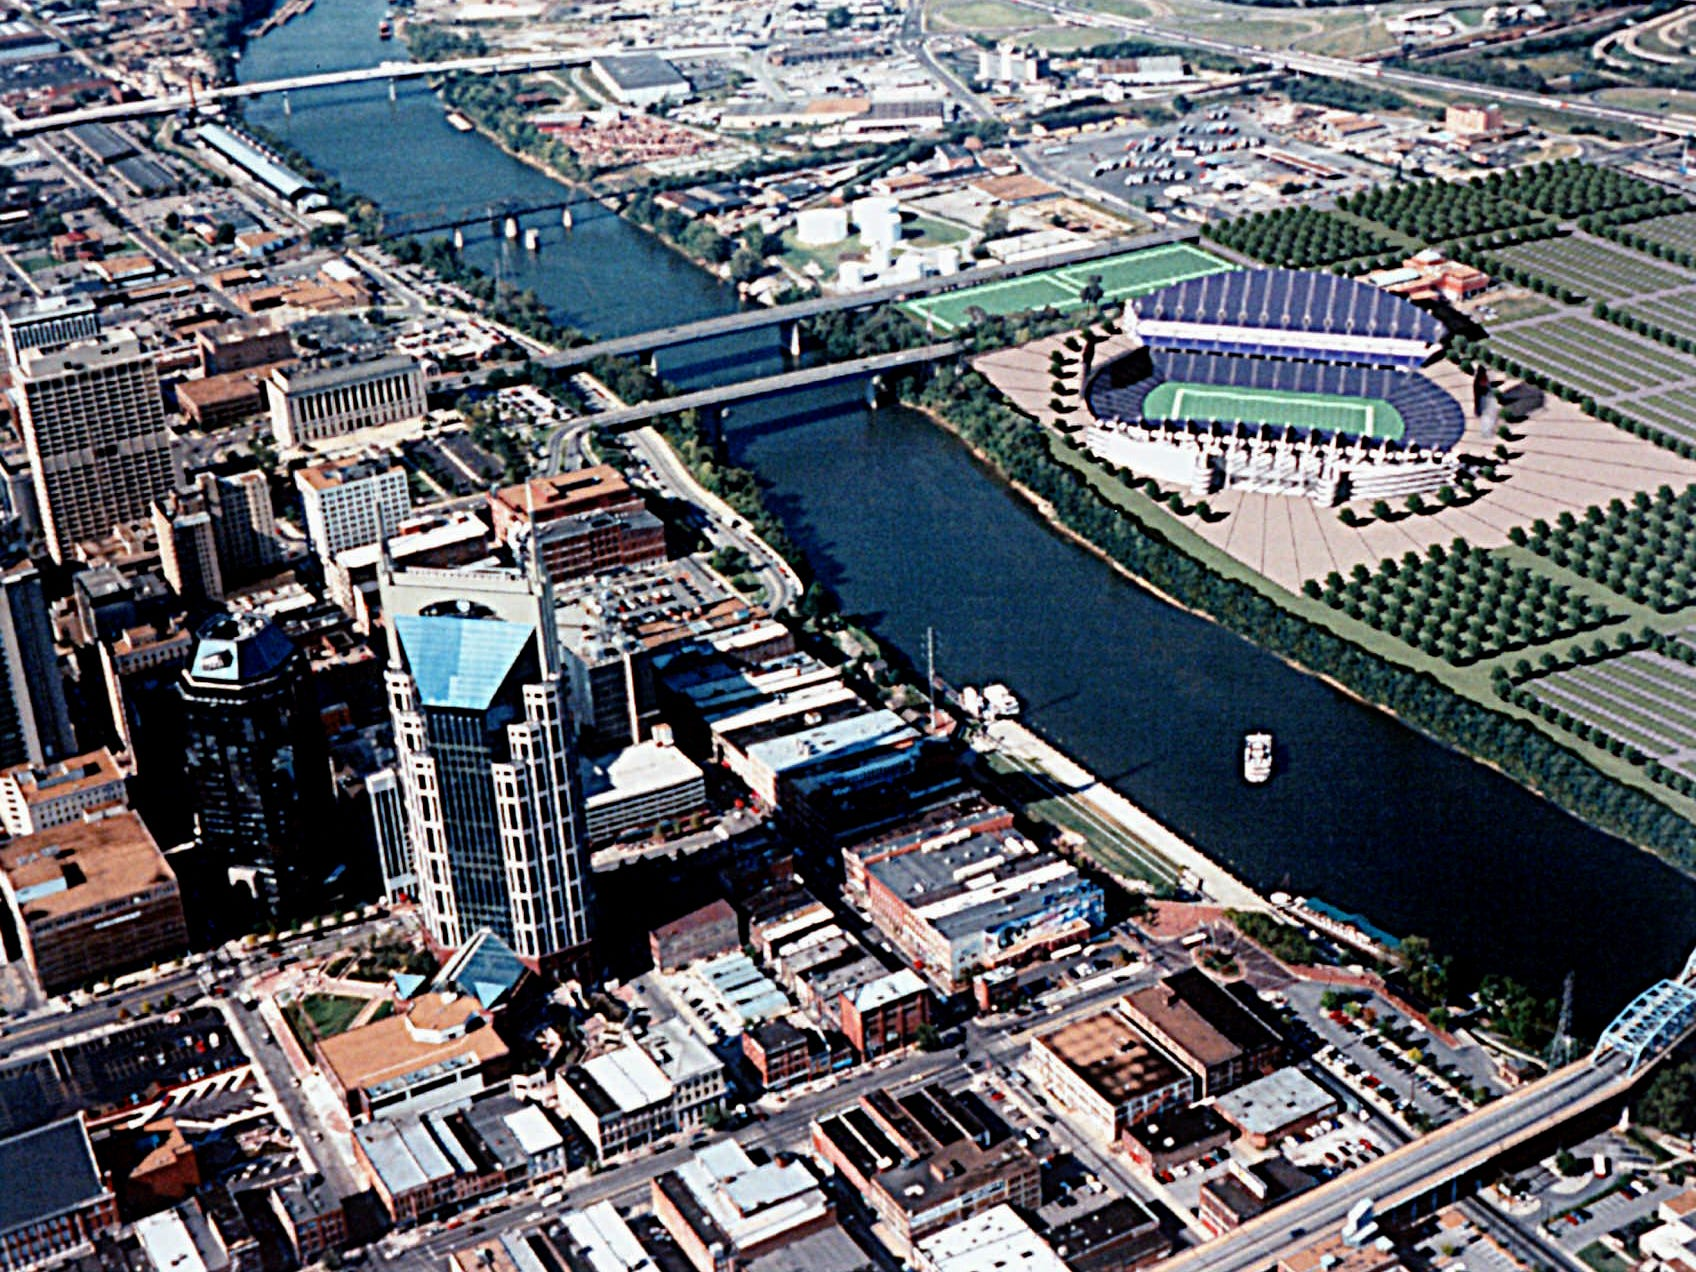 A computer-enhanced photograph shows where a football stadium would be built across the Cumberland River from the downtown area if the Houston Oilers move to Nashville, Tenn. The picture was provided on Oct. 5, 1995 when Nashville mayor Phil Bredesen disclosed the details of the financial package offered by Nashville and the state of Tennessee.